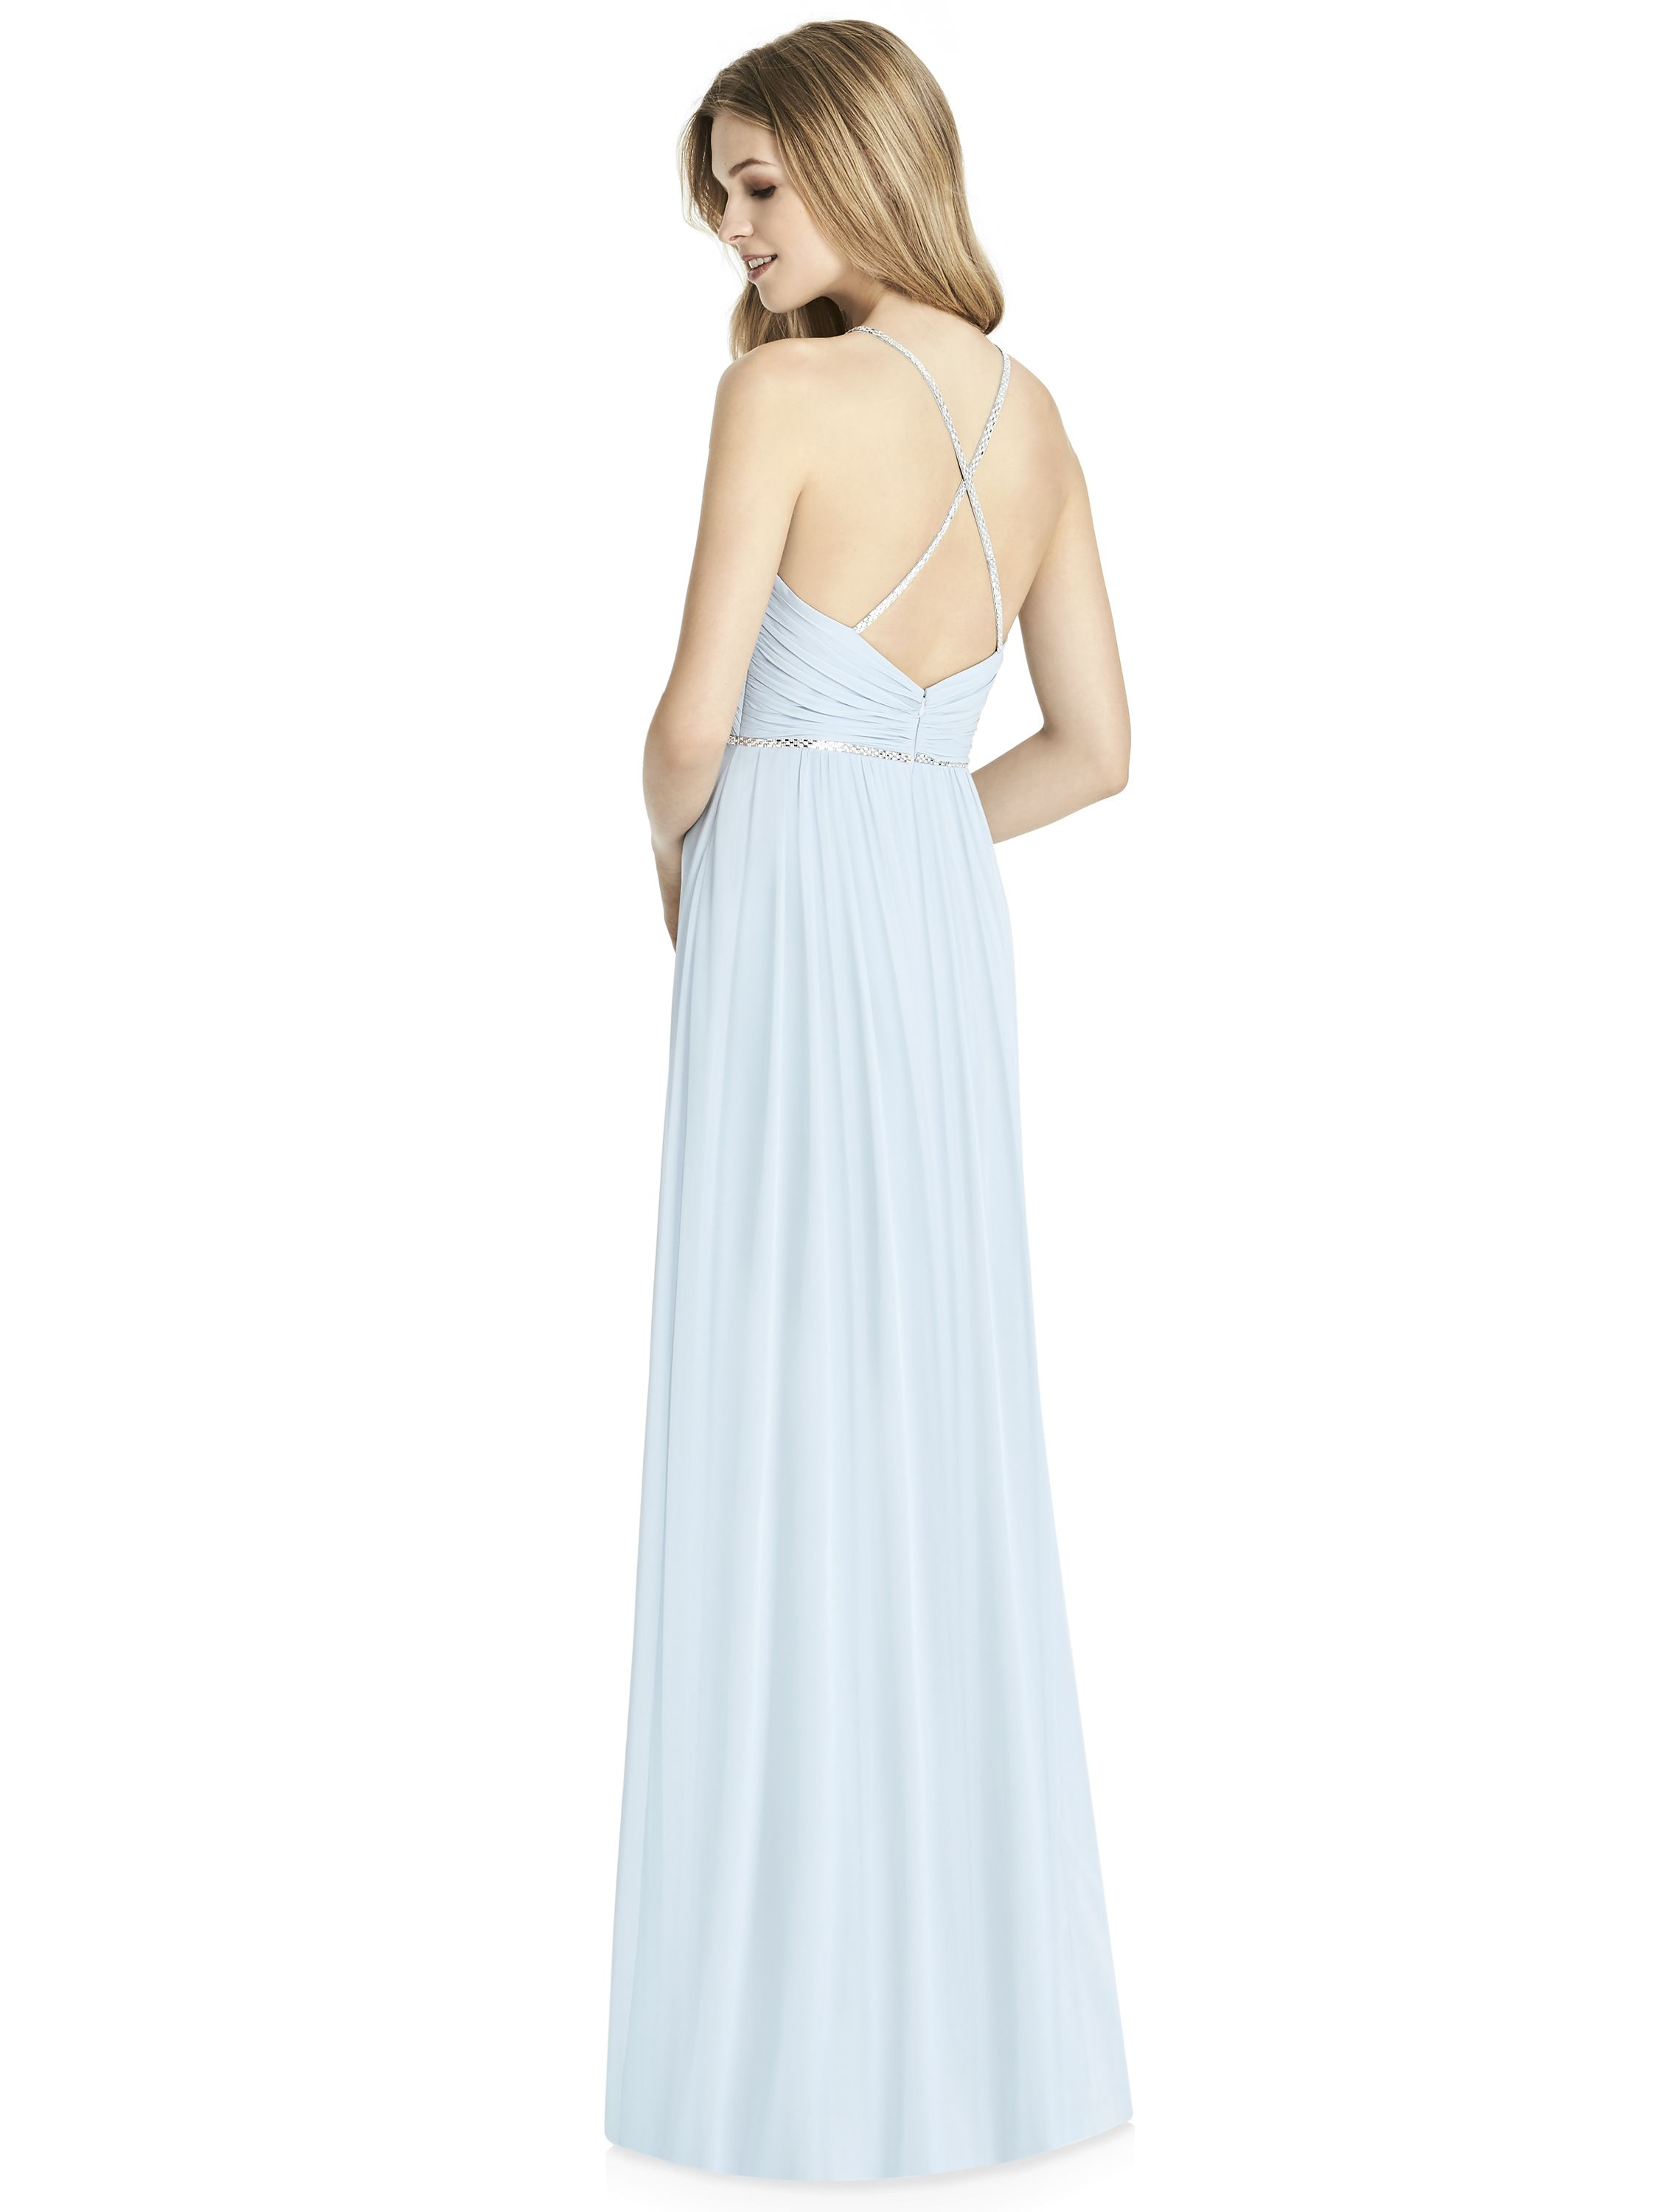 Jenny Packham Bridesmaid Collection - a Dessy Group exclusive ...